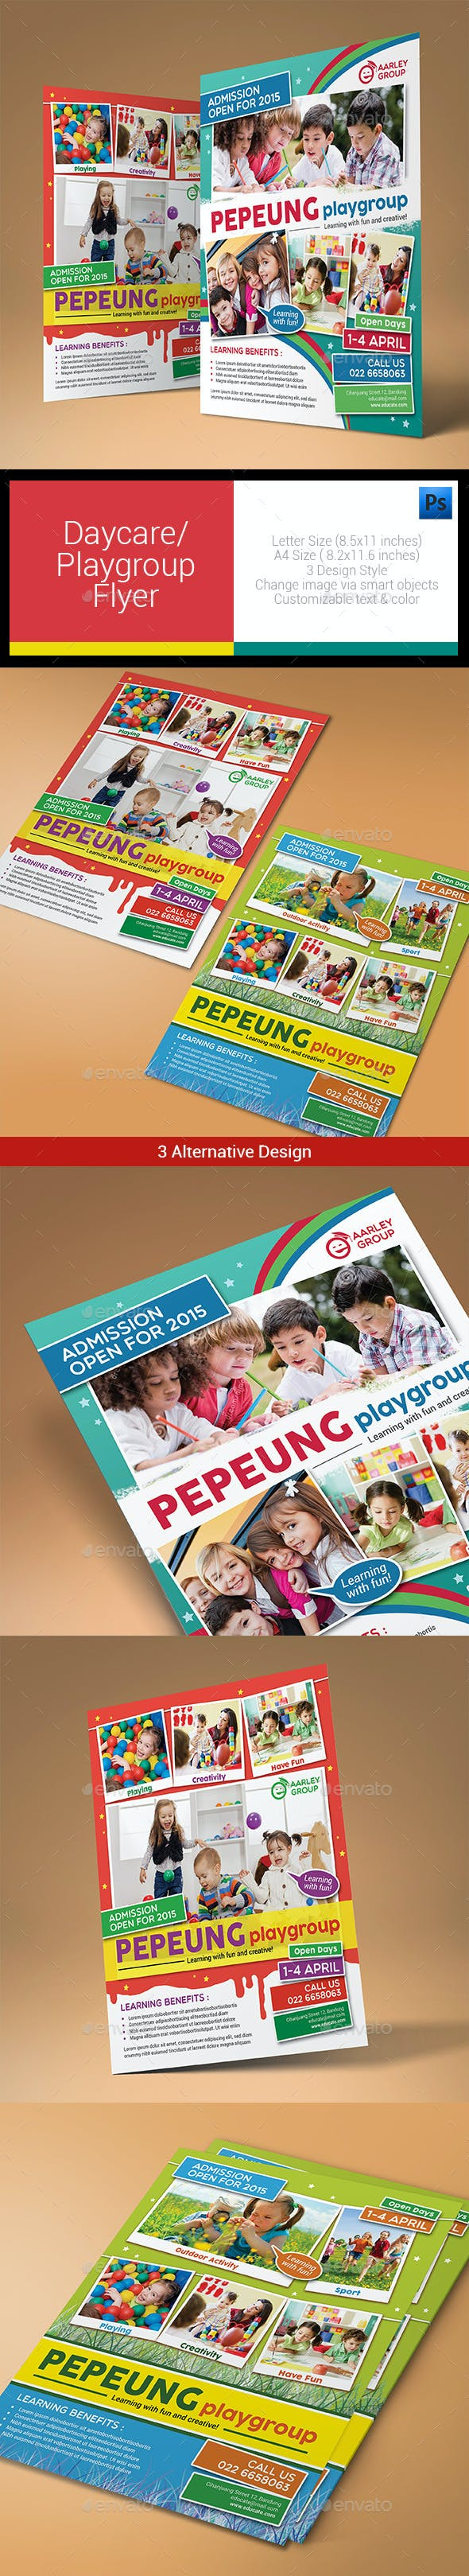 daycare playgroup flyer corporate flyers